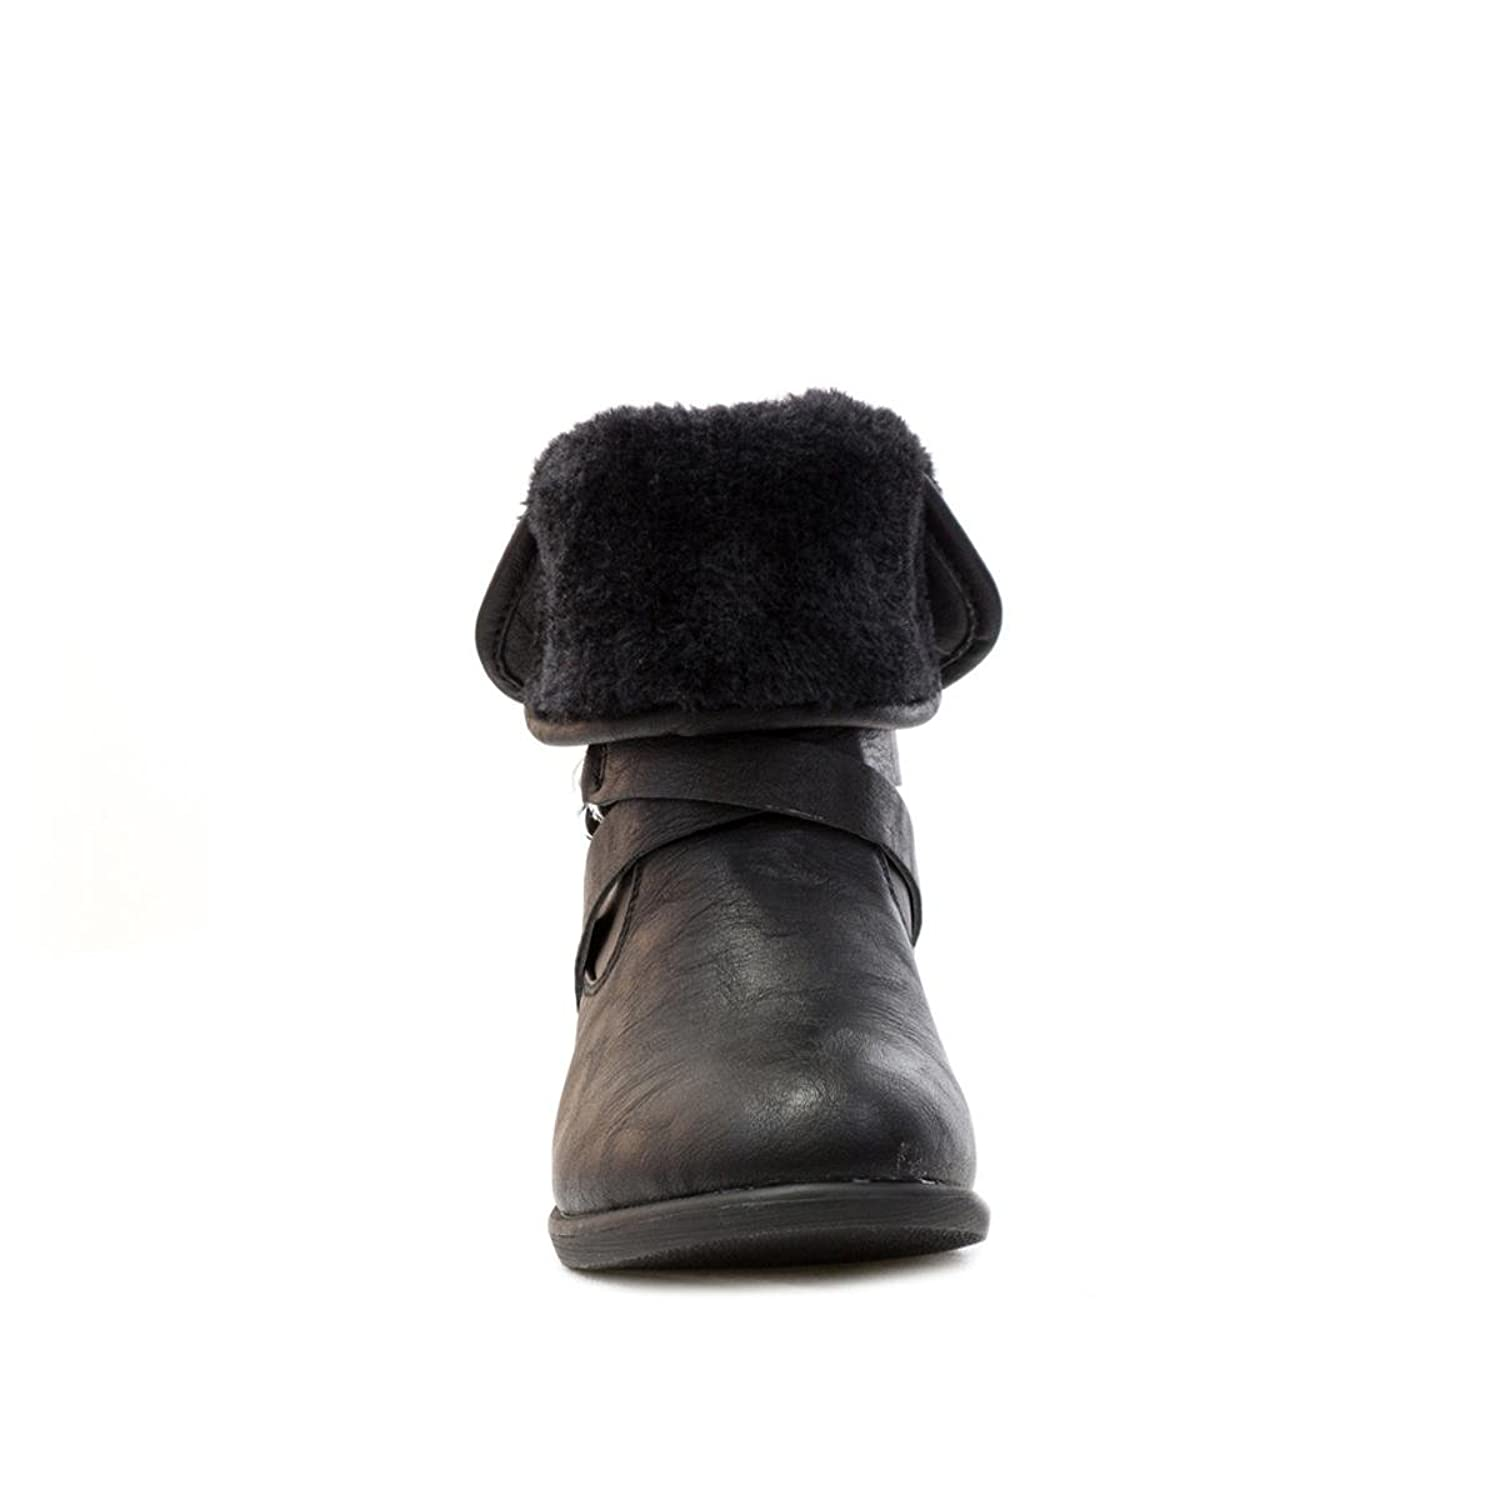 Lilley Girls Black Turndown Fur Top Ankle Boot - Size 6 UK - Black:  Amazon.co.uk: Shoes & Bags